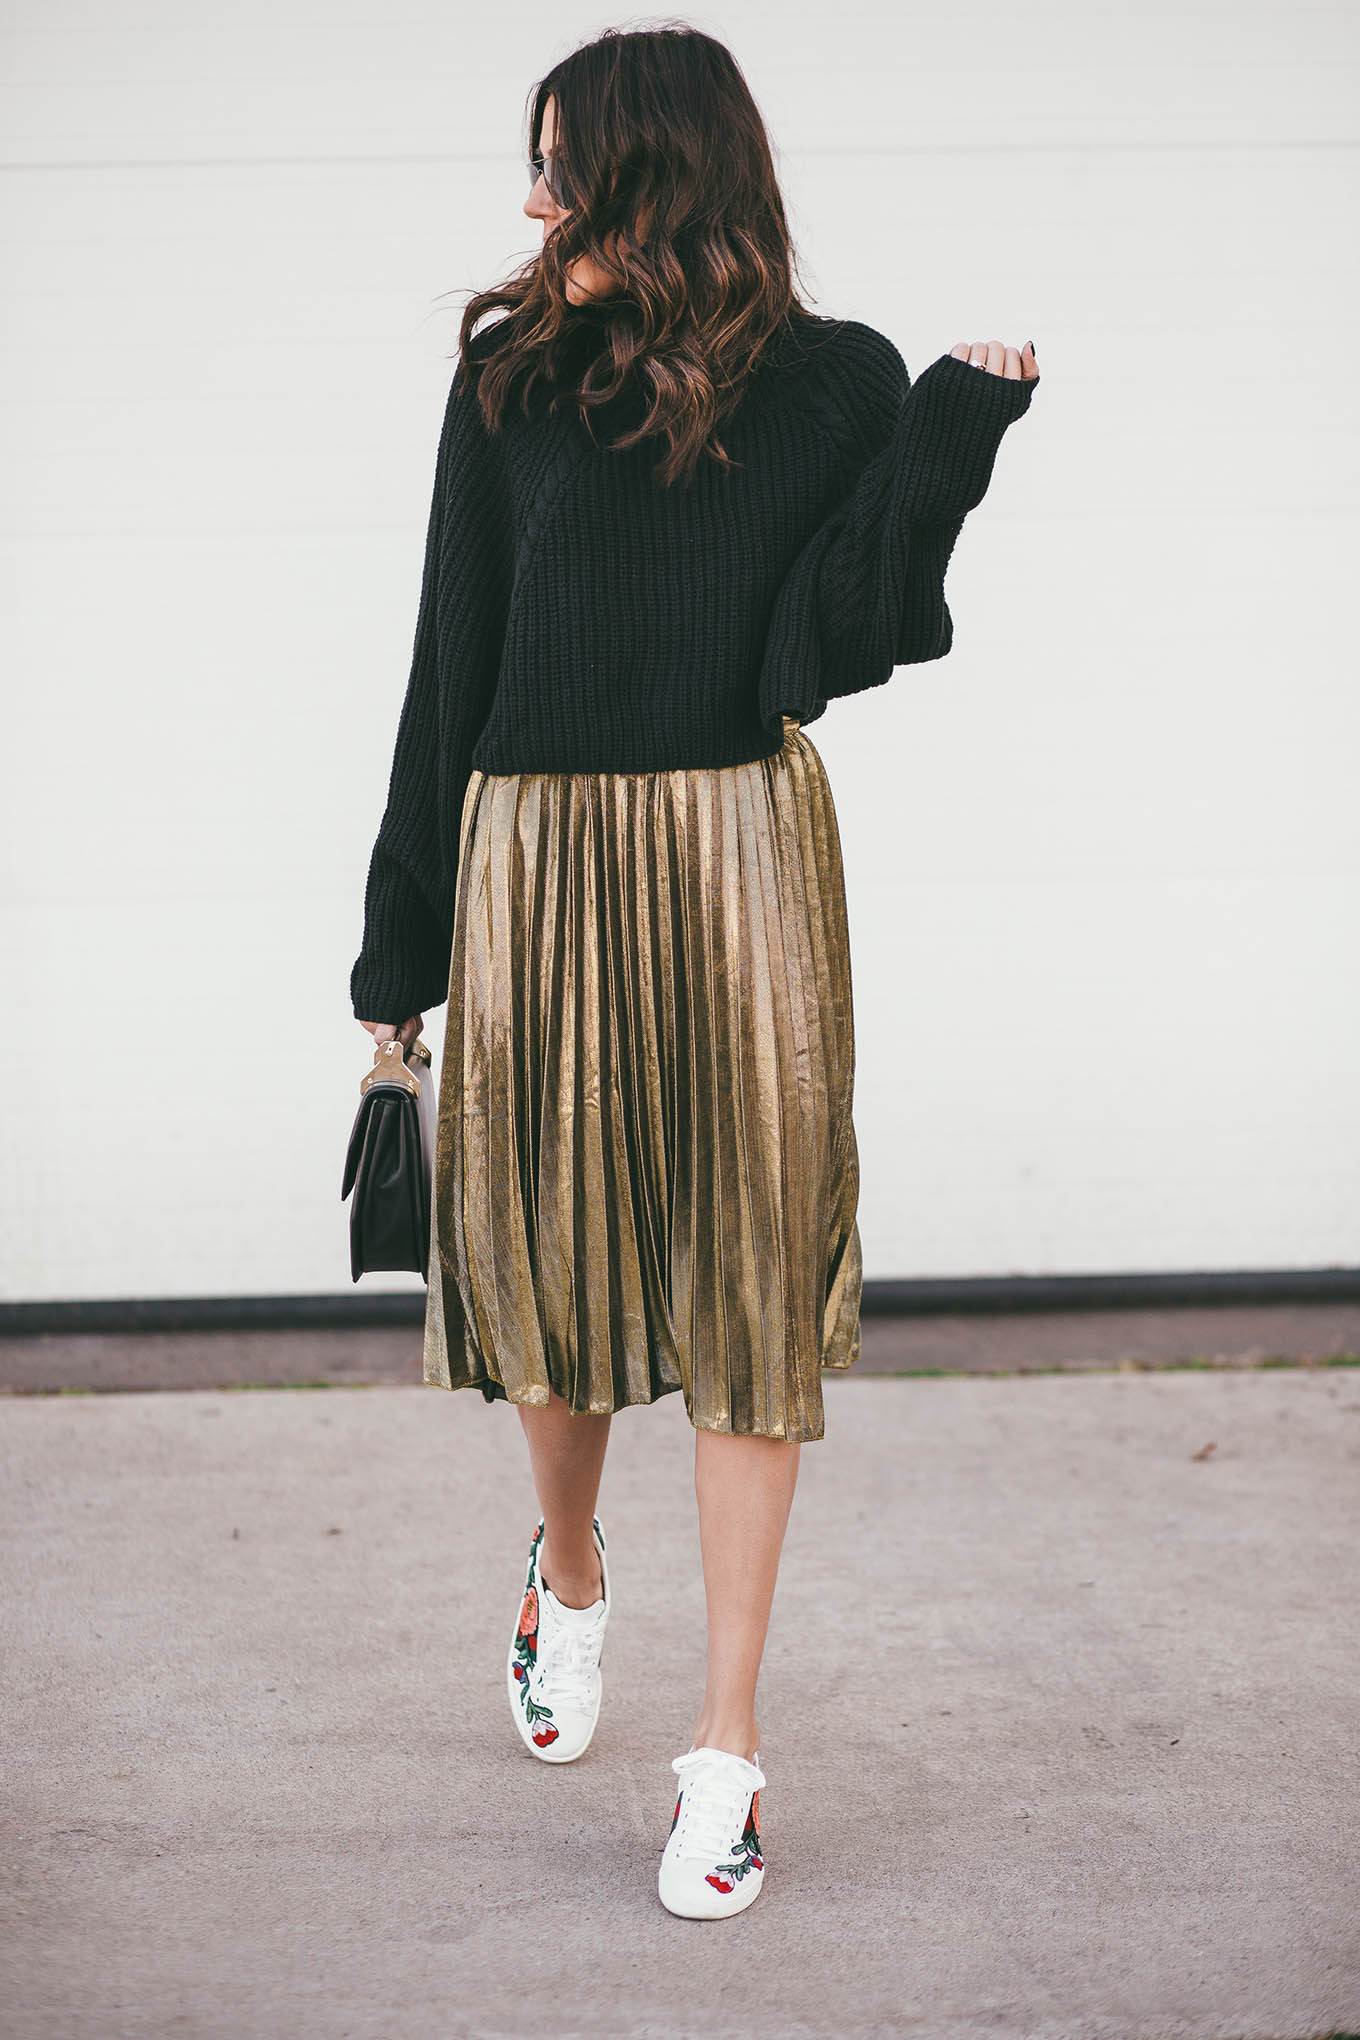 ily couture pleated skirt